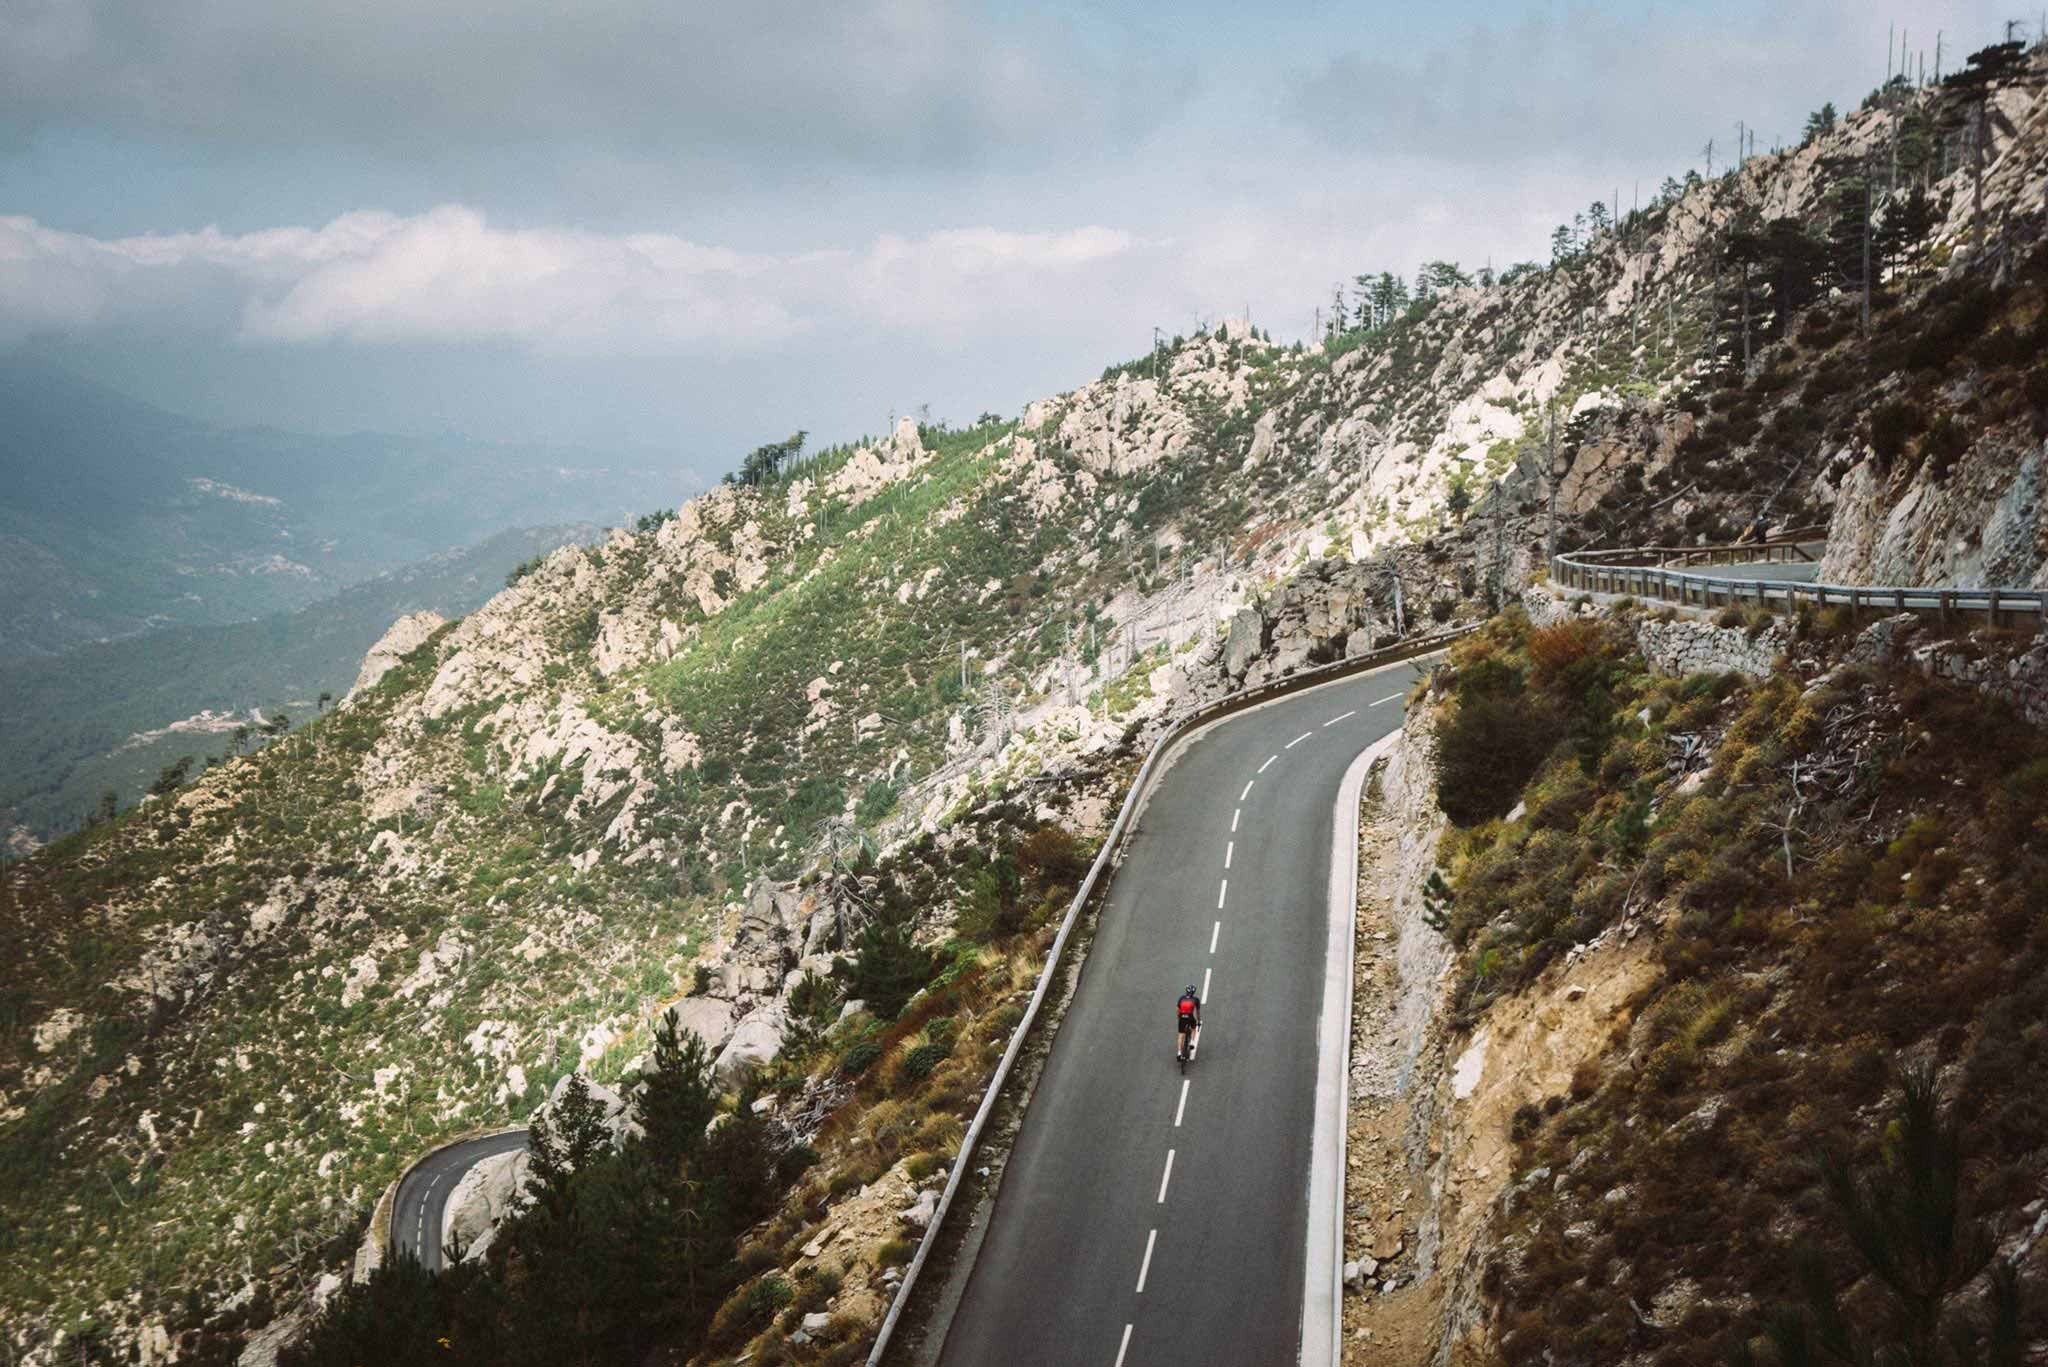 Rapha | The Uphill Battle